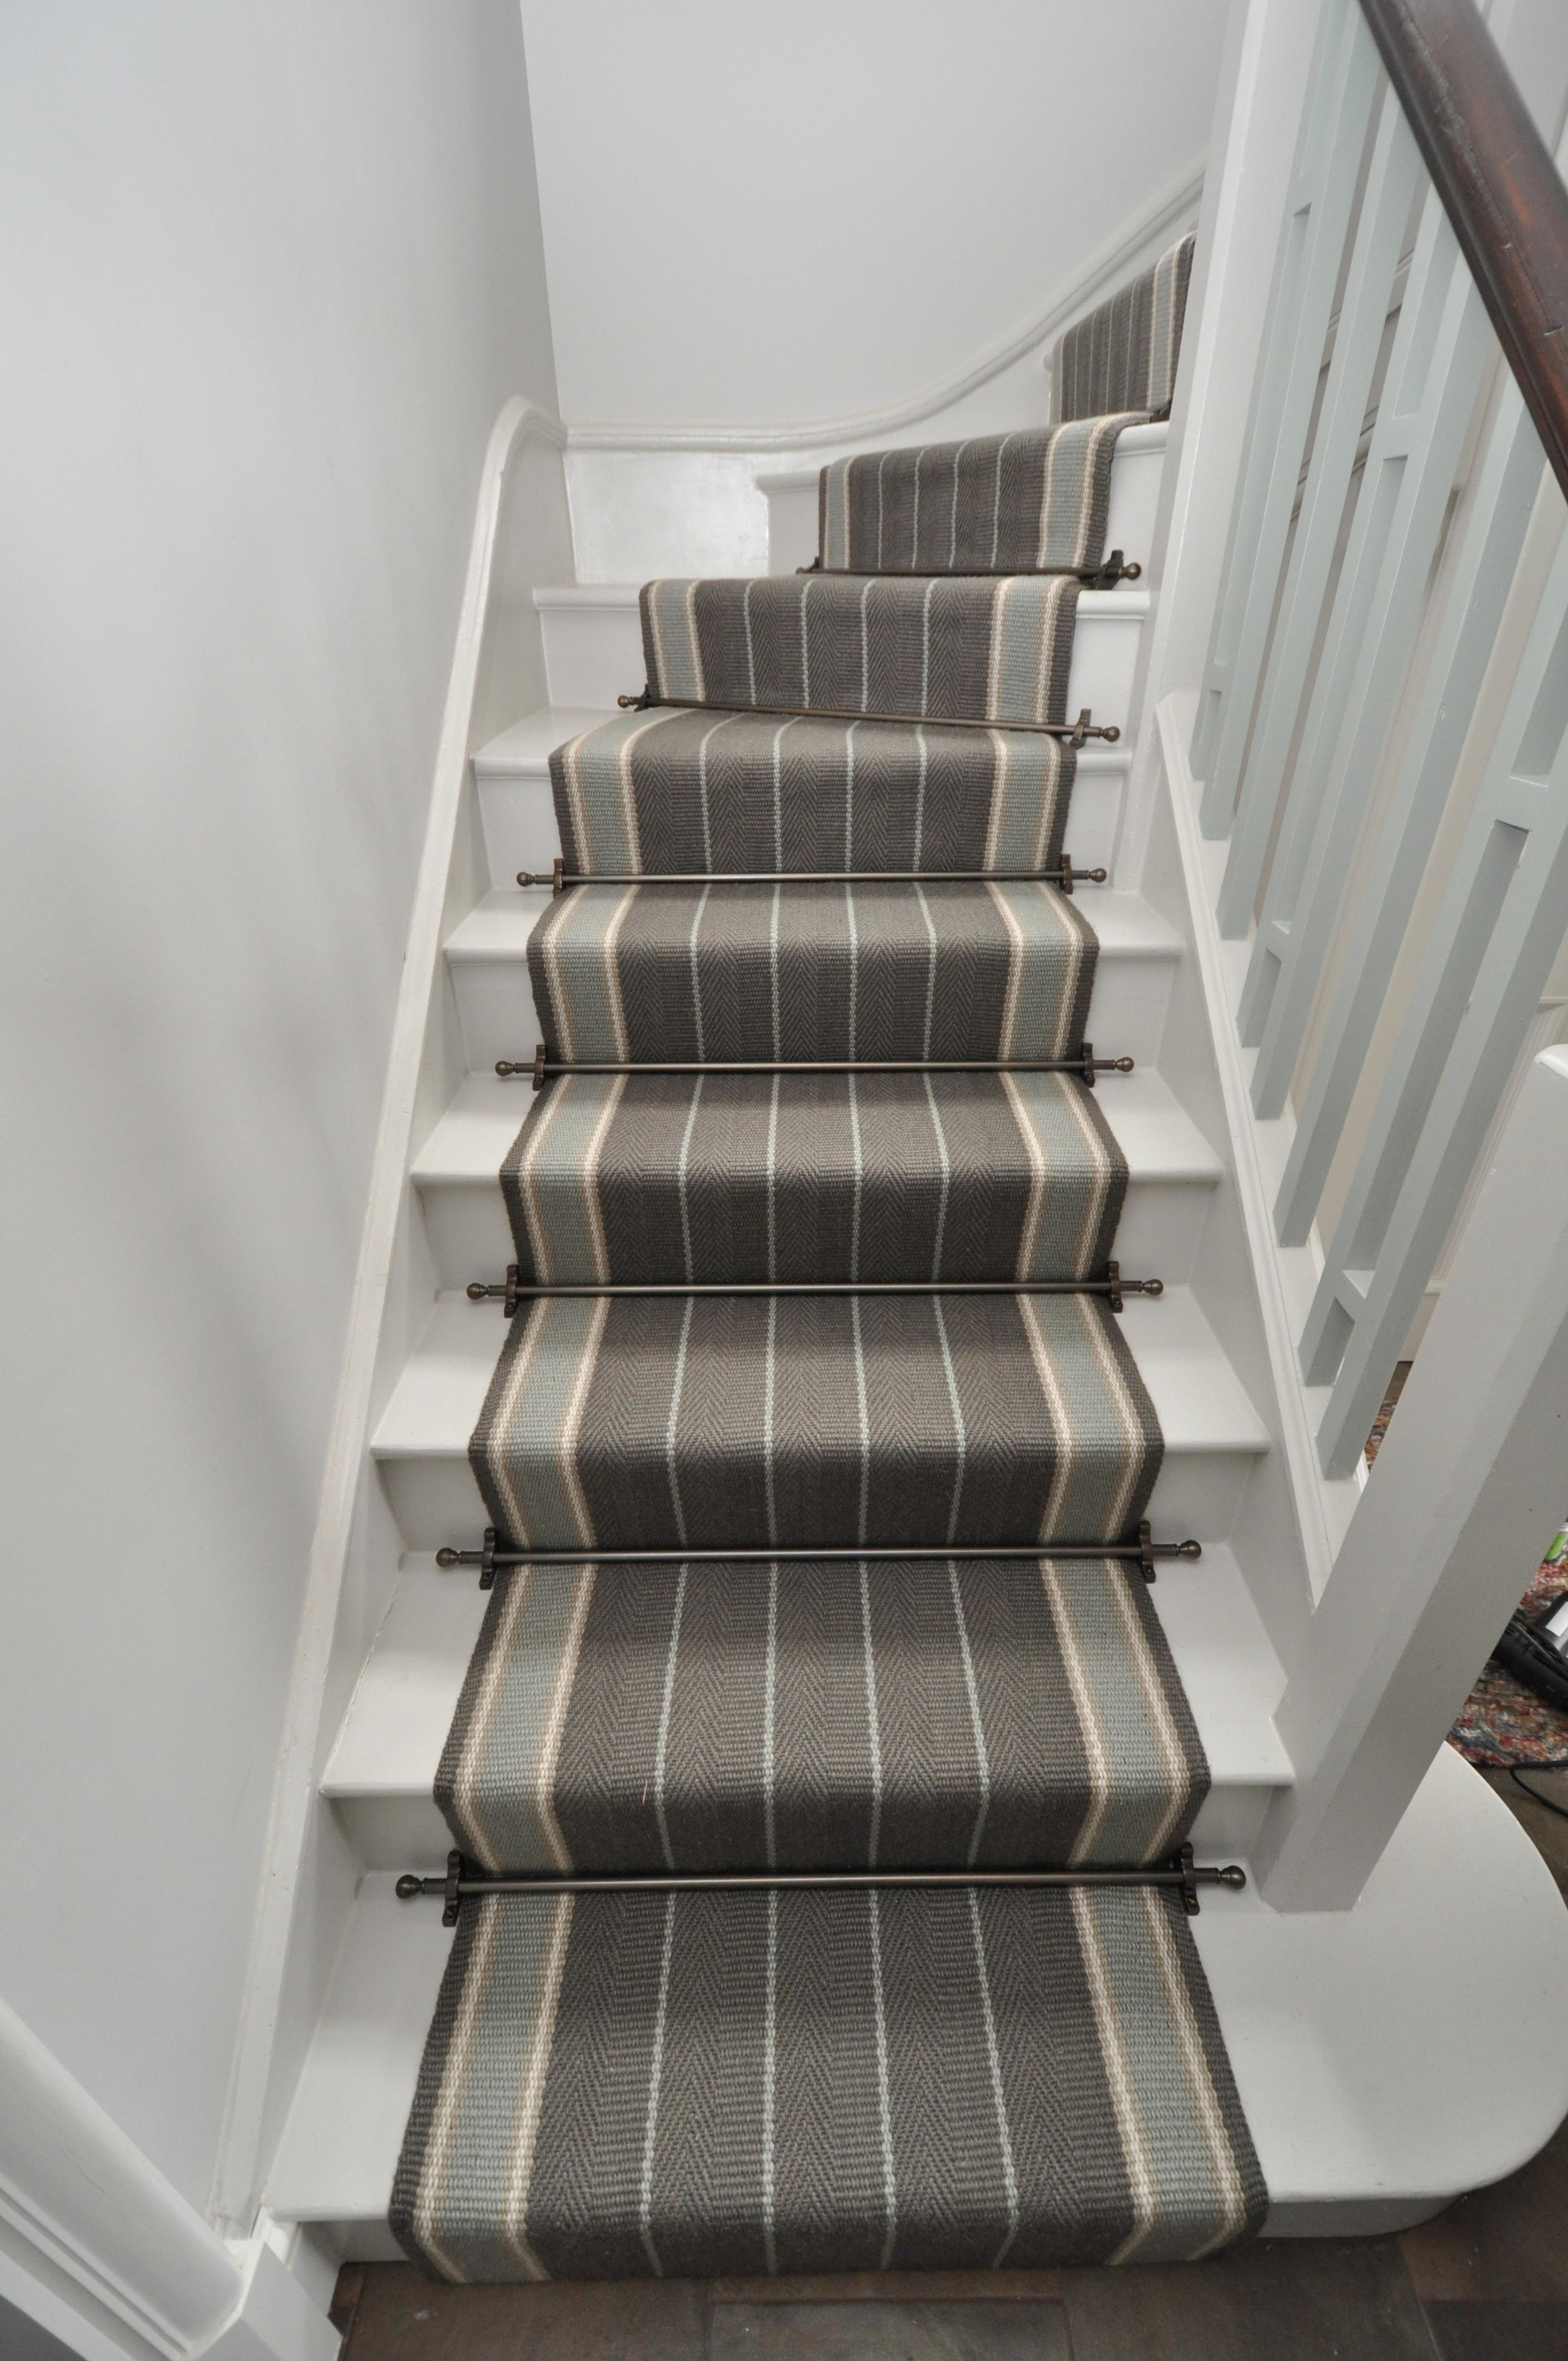 flatweave-stair-runner-london-bowloom-carpet-off-the-loom-DSC_1500.jpg